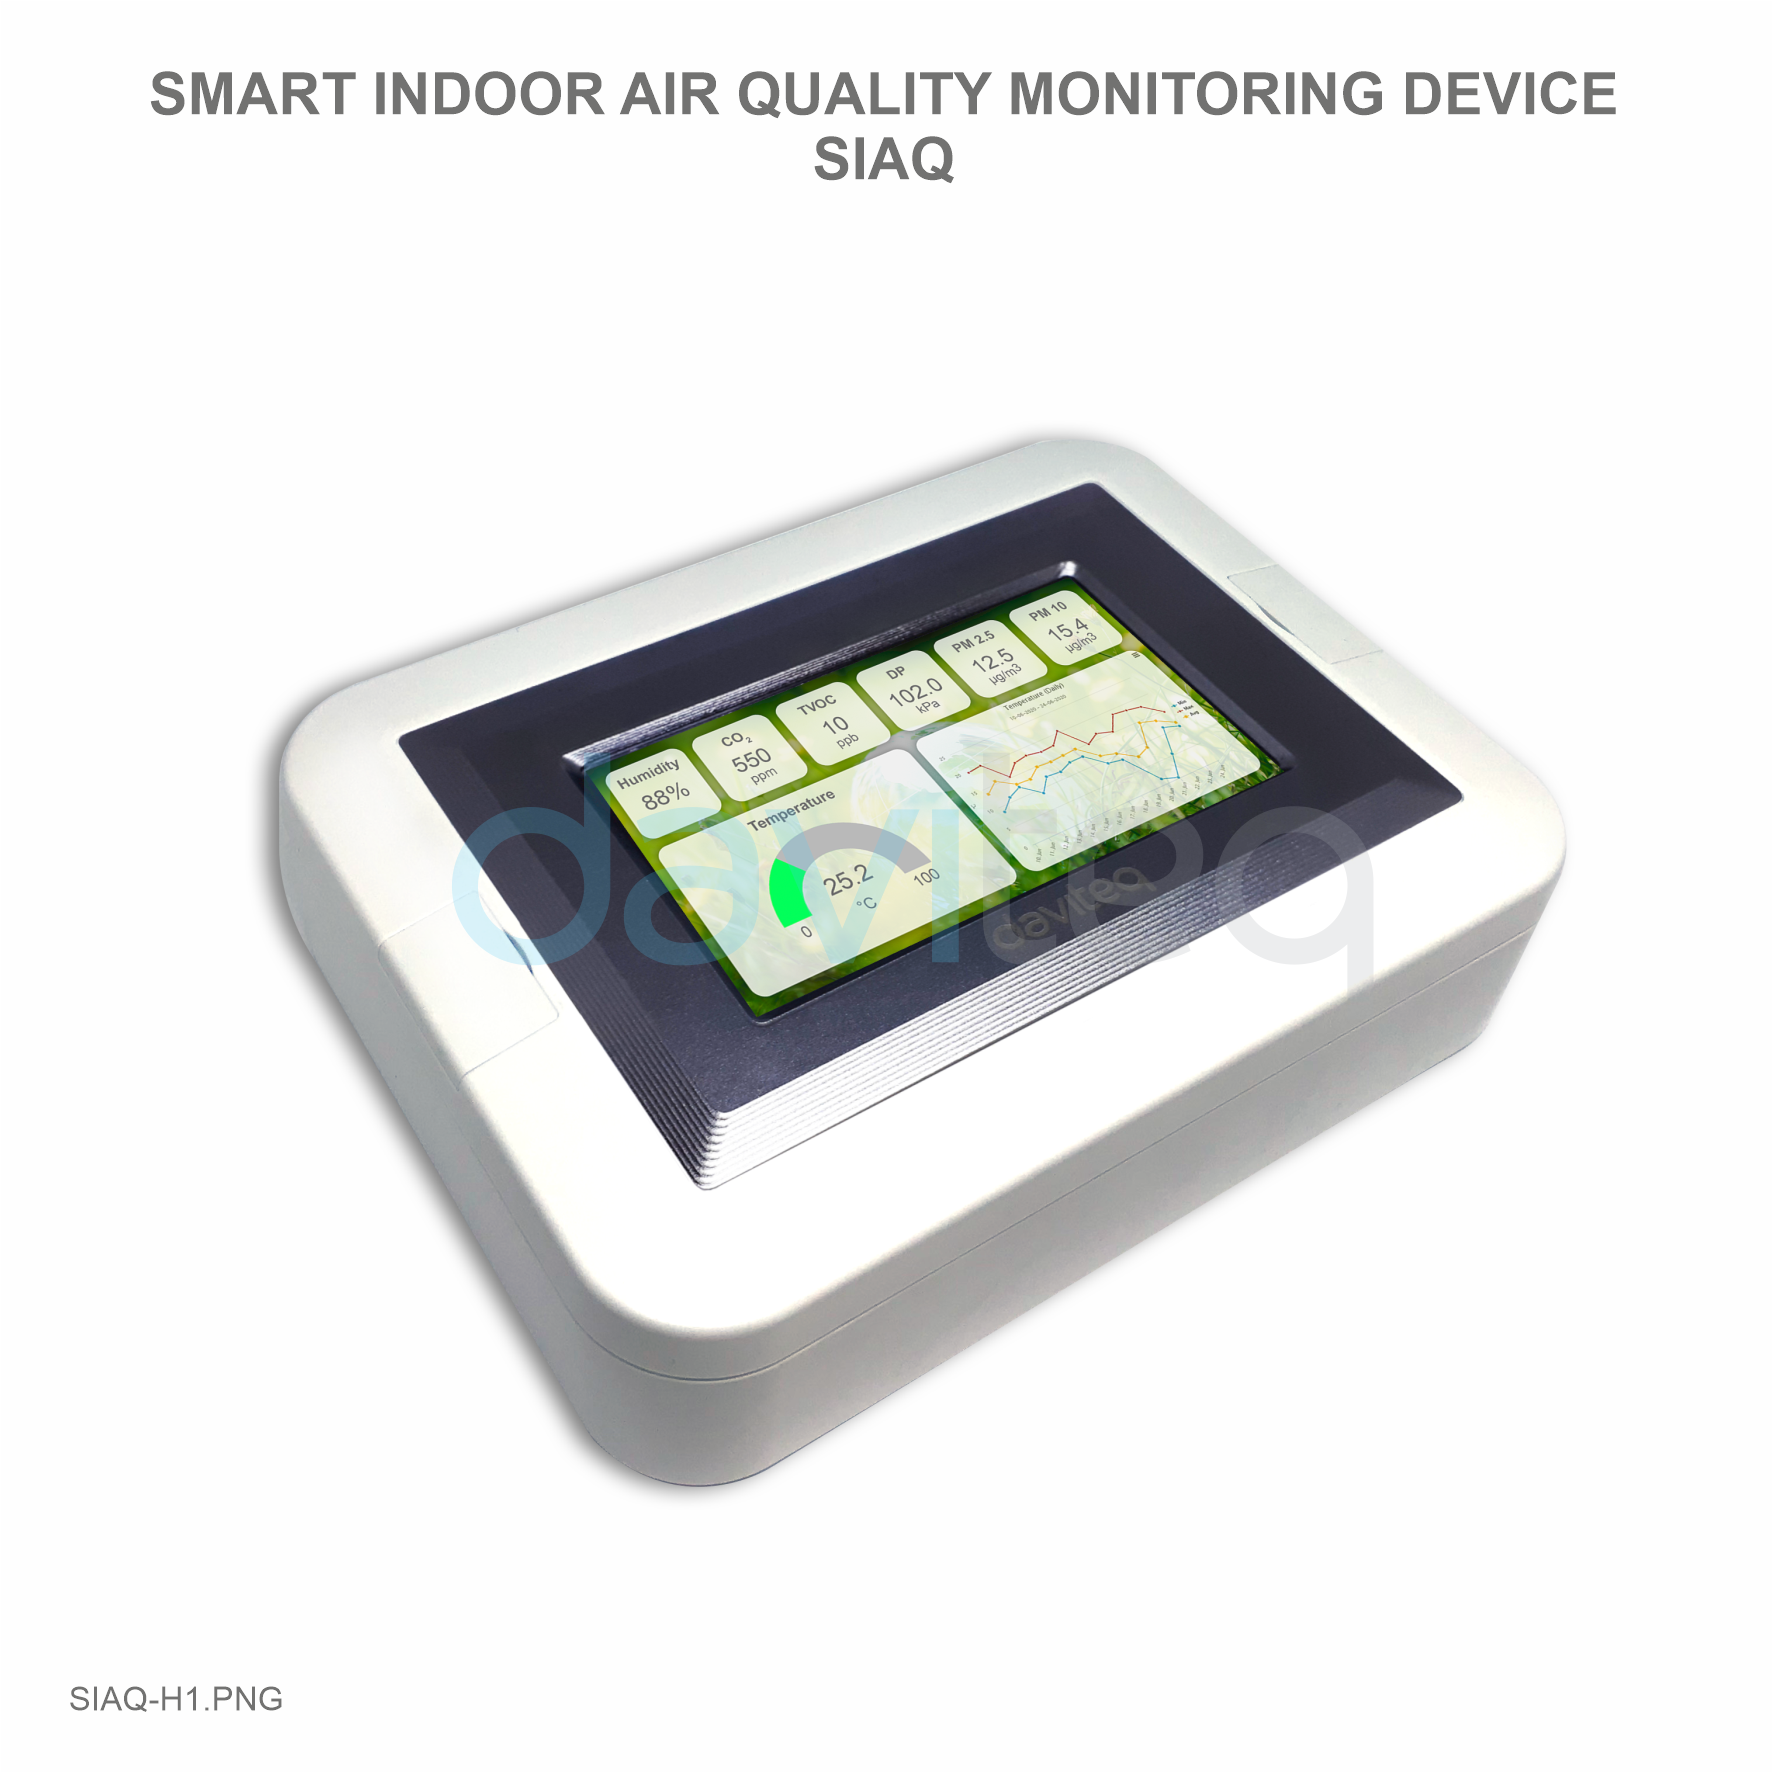 Smart Indoor Air Quality Monitoring Device